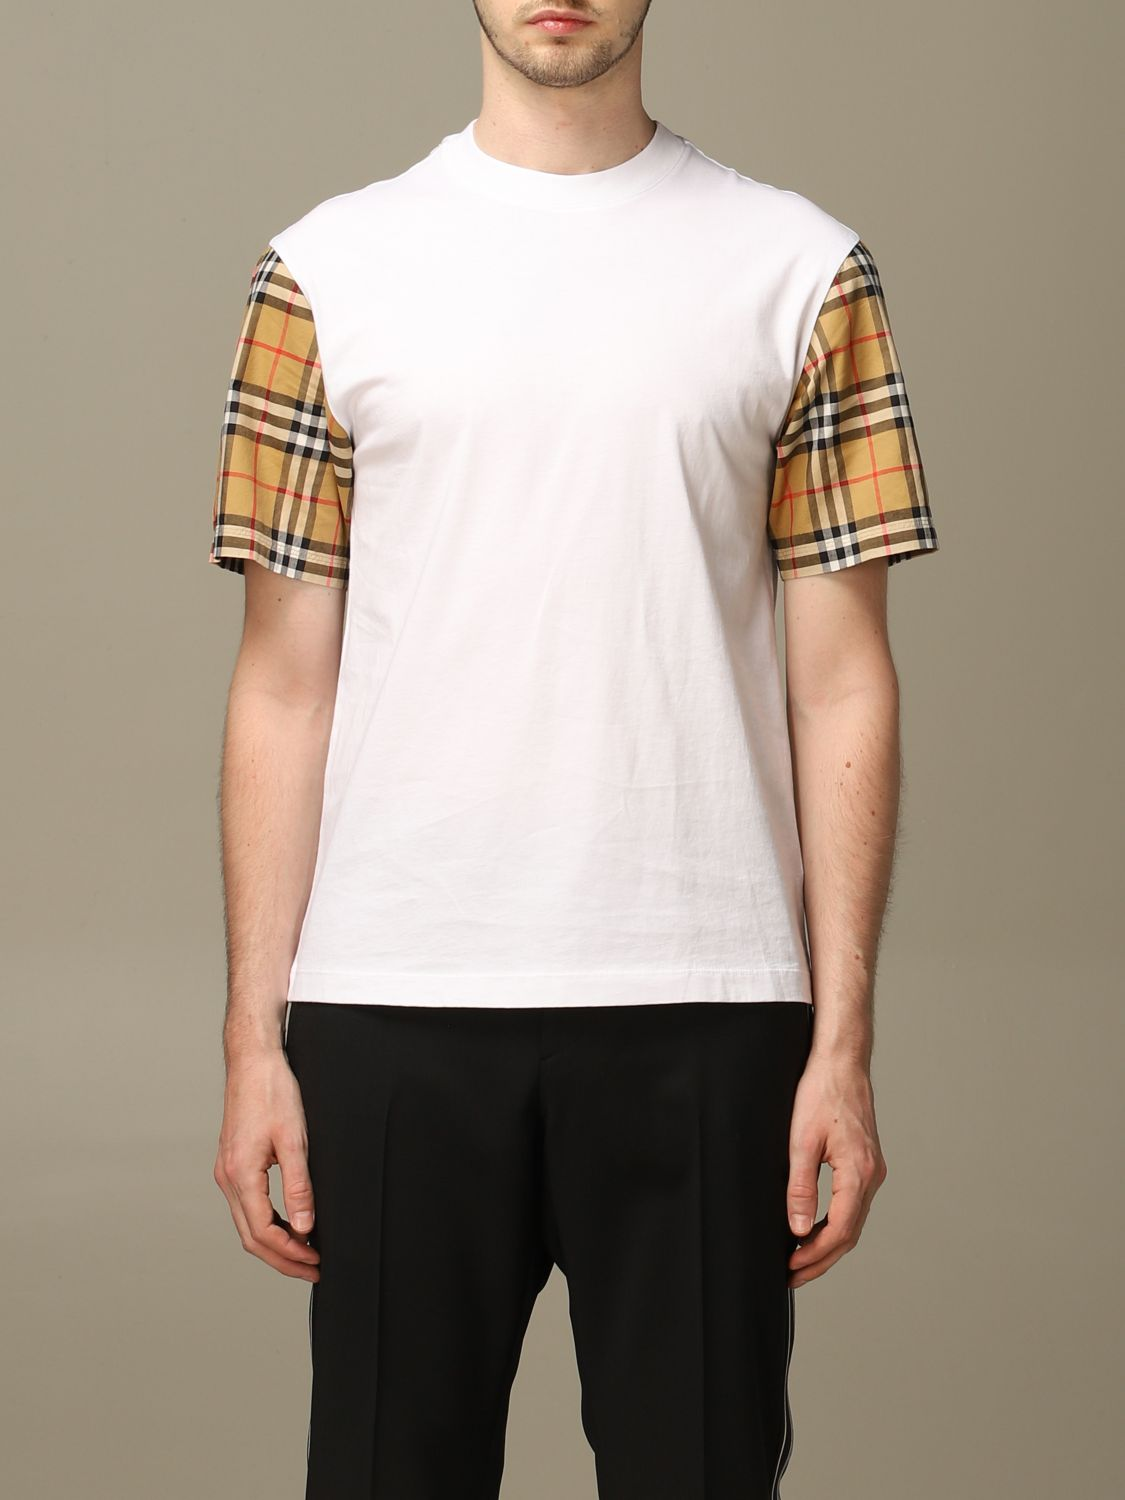 T-shirt Burberry: Burberry stretch cotton T-shirt with check sleeves white 1